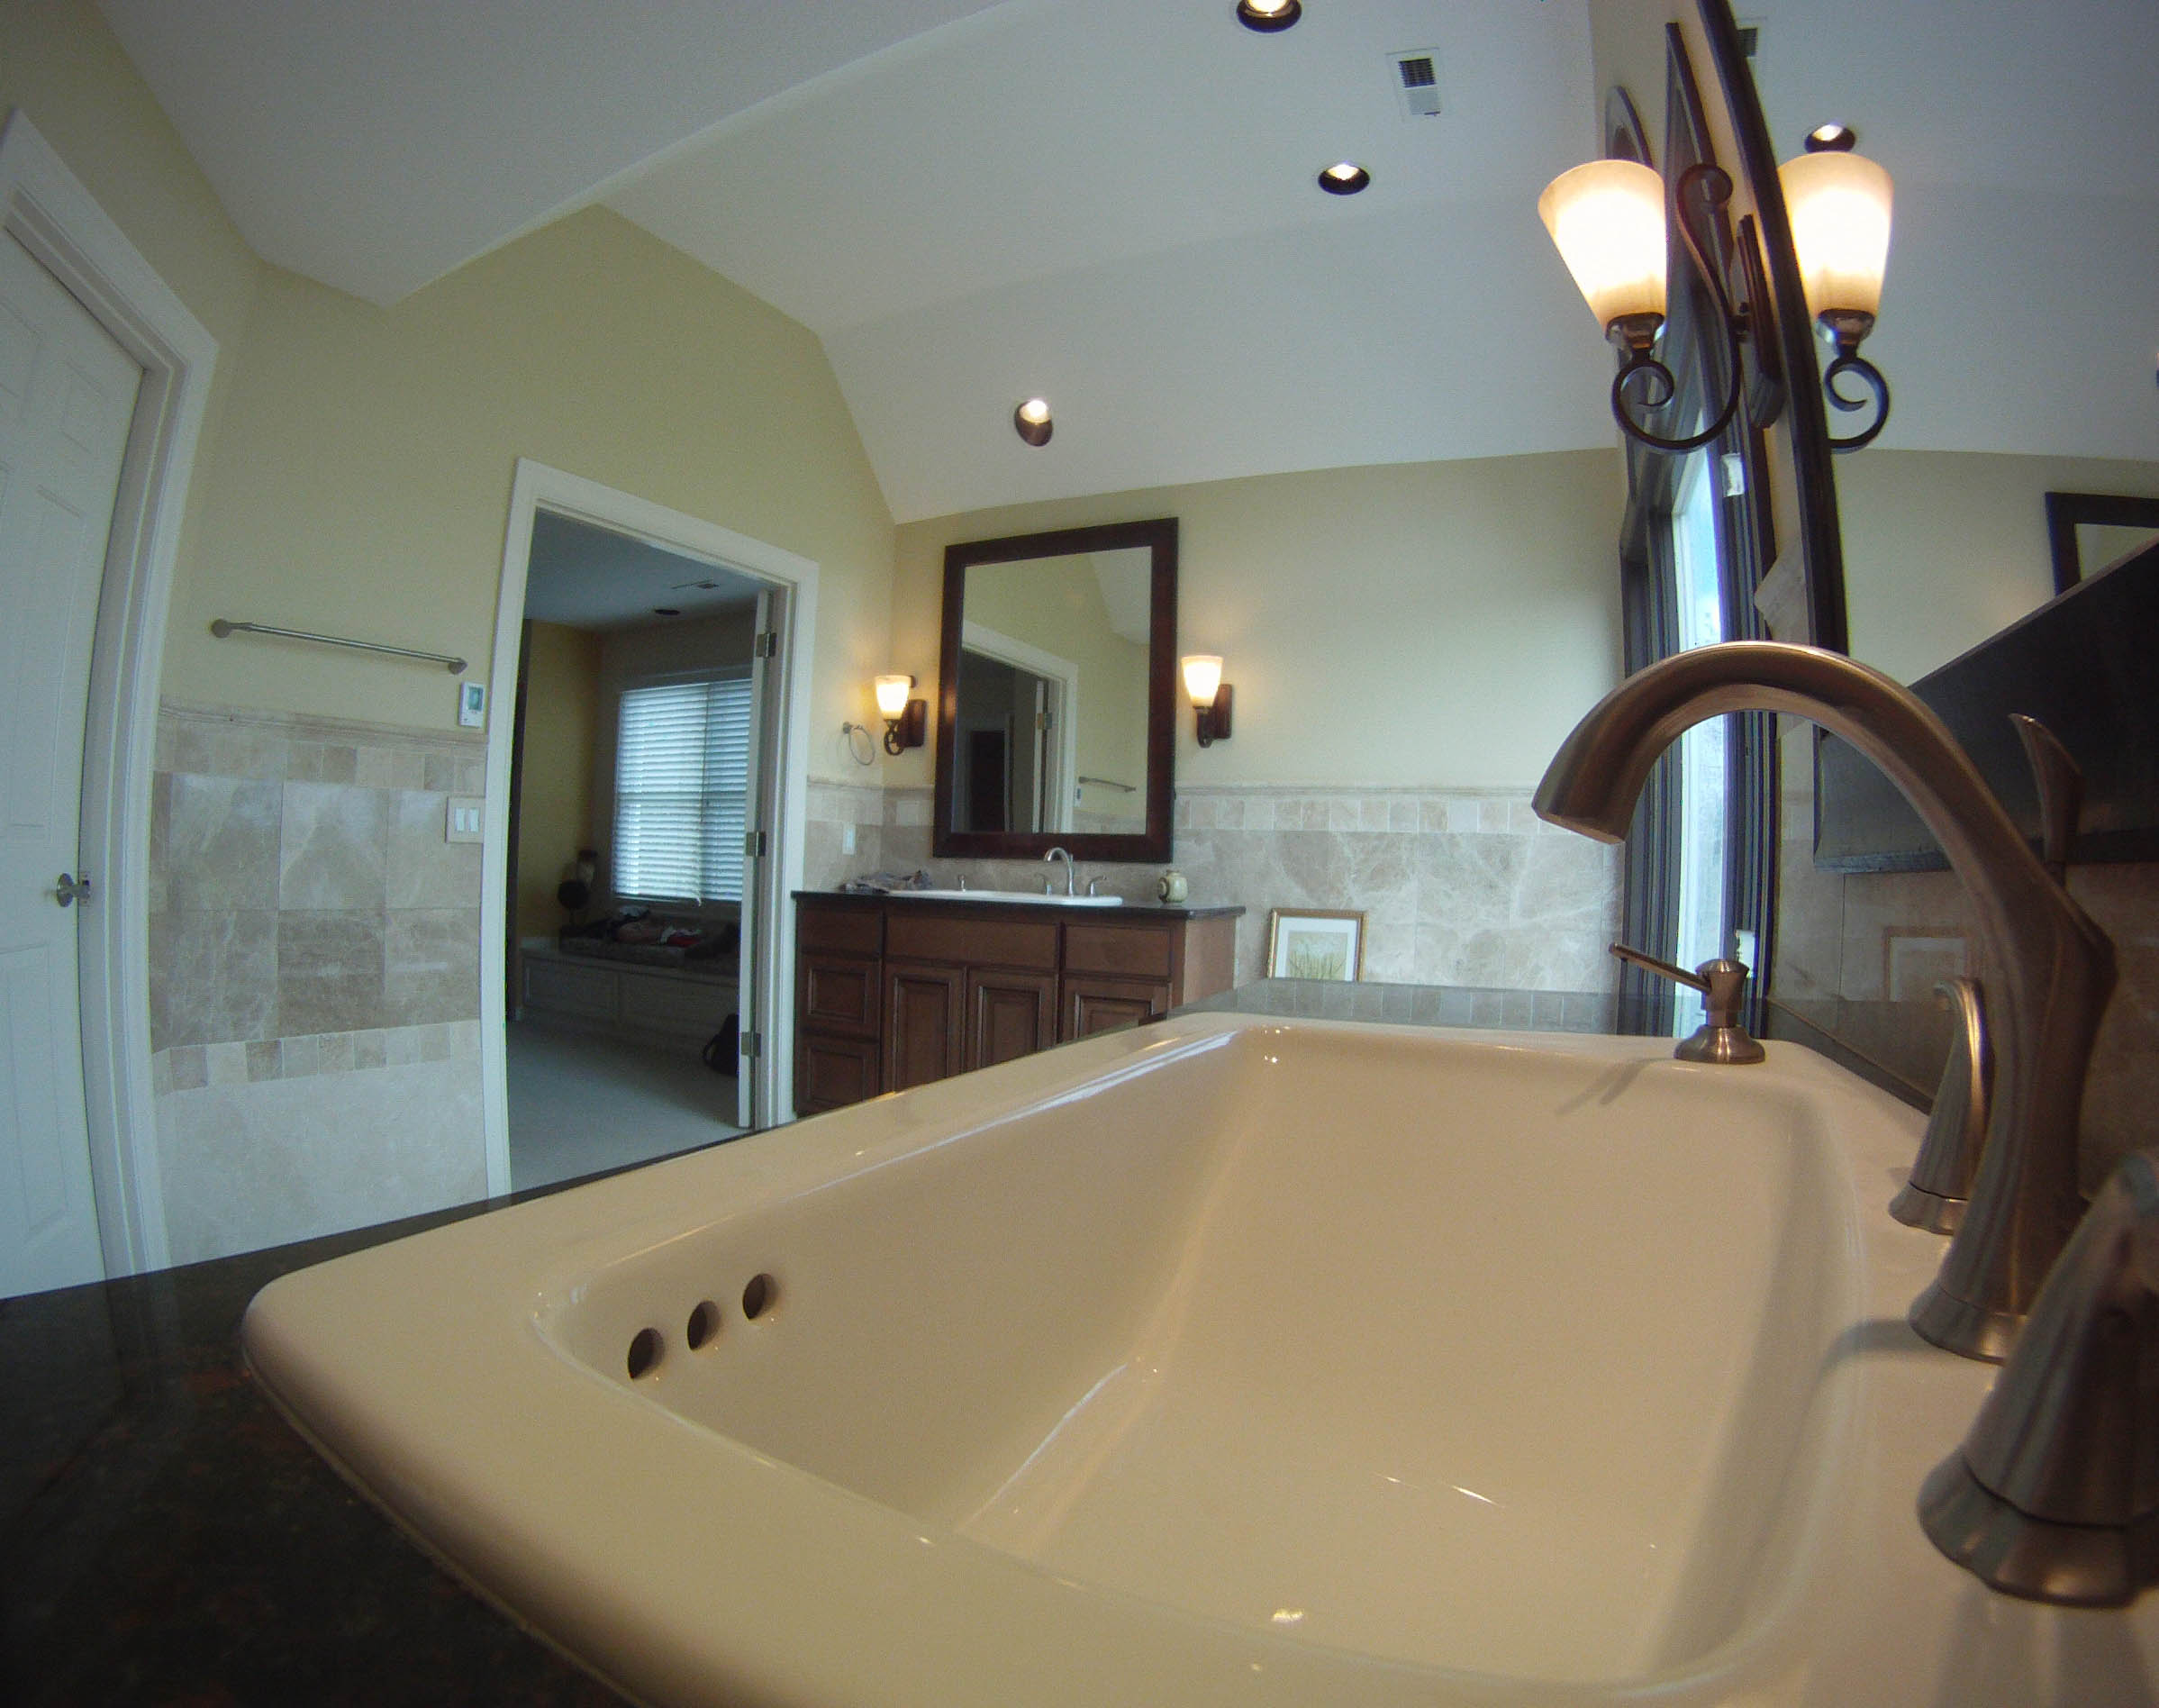 3 low cost bathroom remodel ideas affinity home design - How much it cost to build a bathroom ...